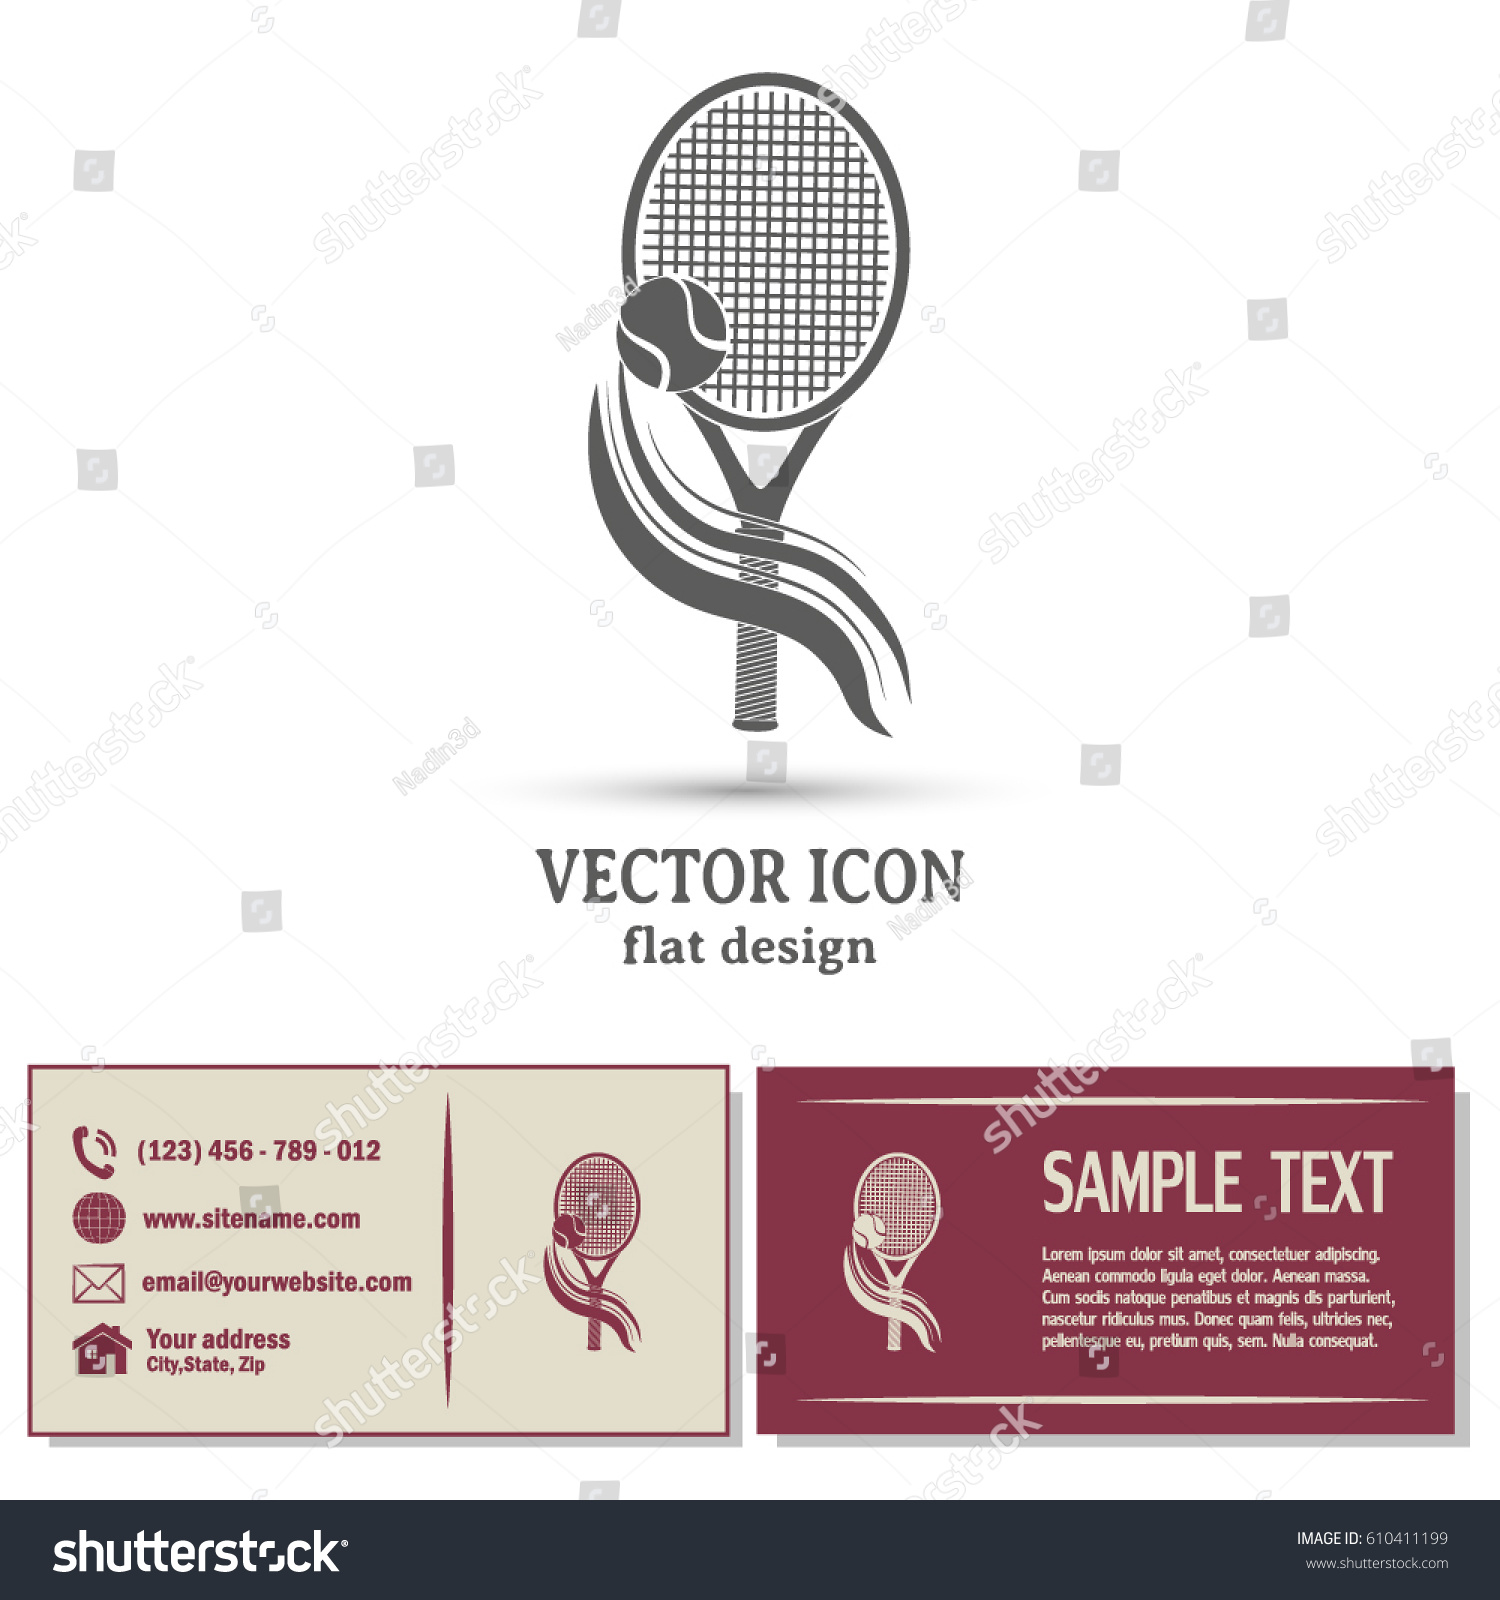 Business Cards Design Tennis Icon Stock Vector 610411199 ...